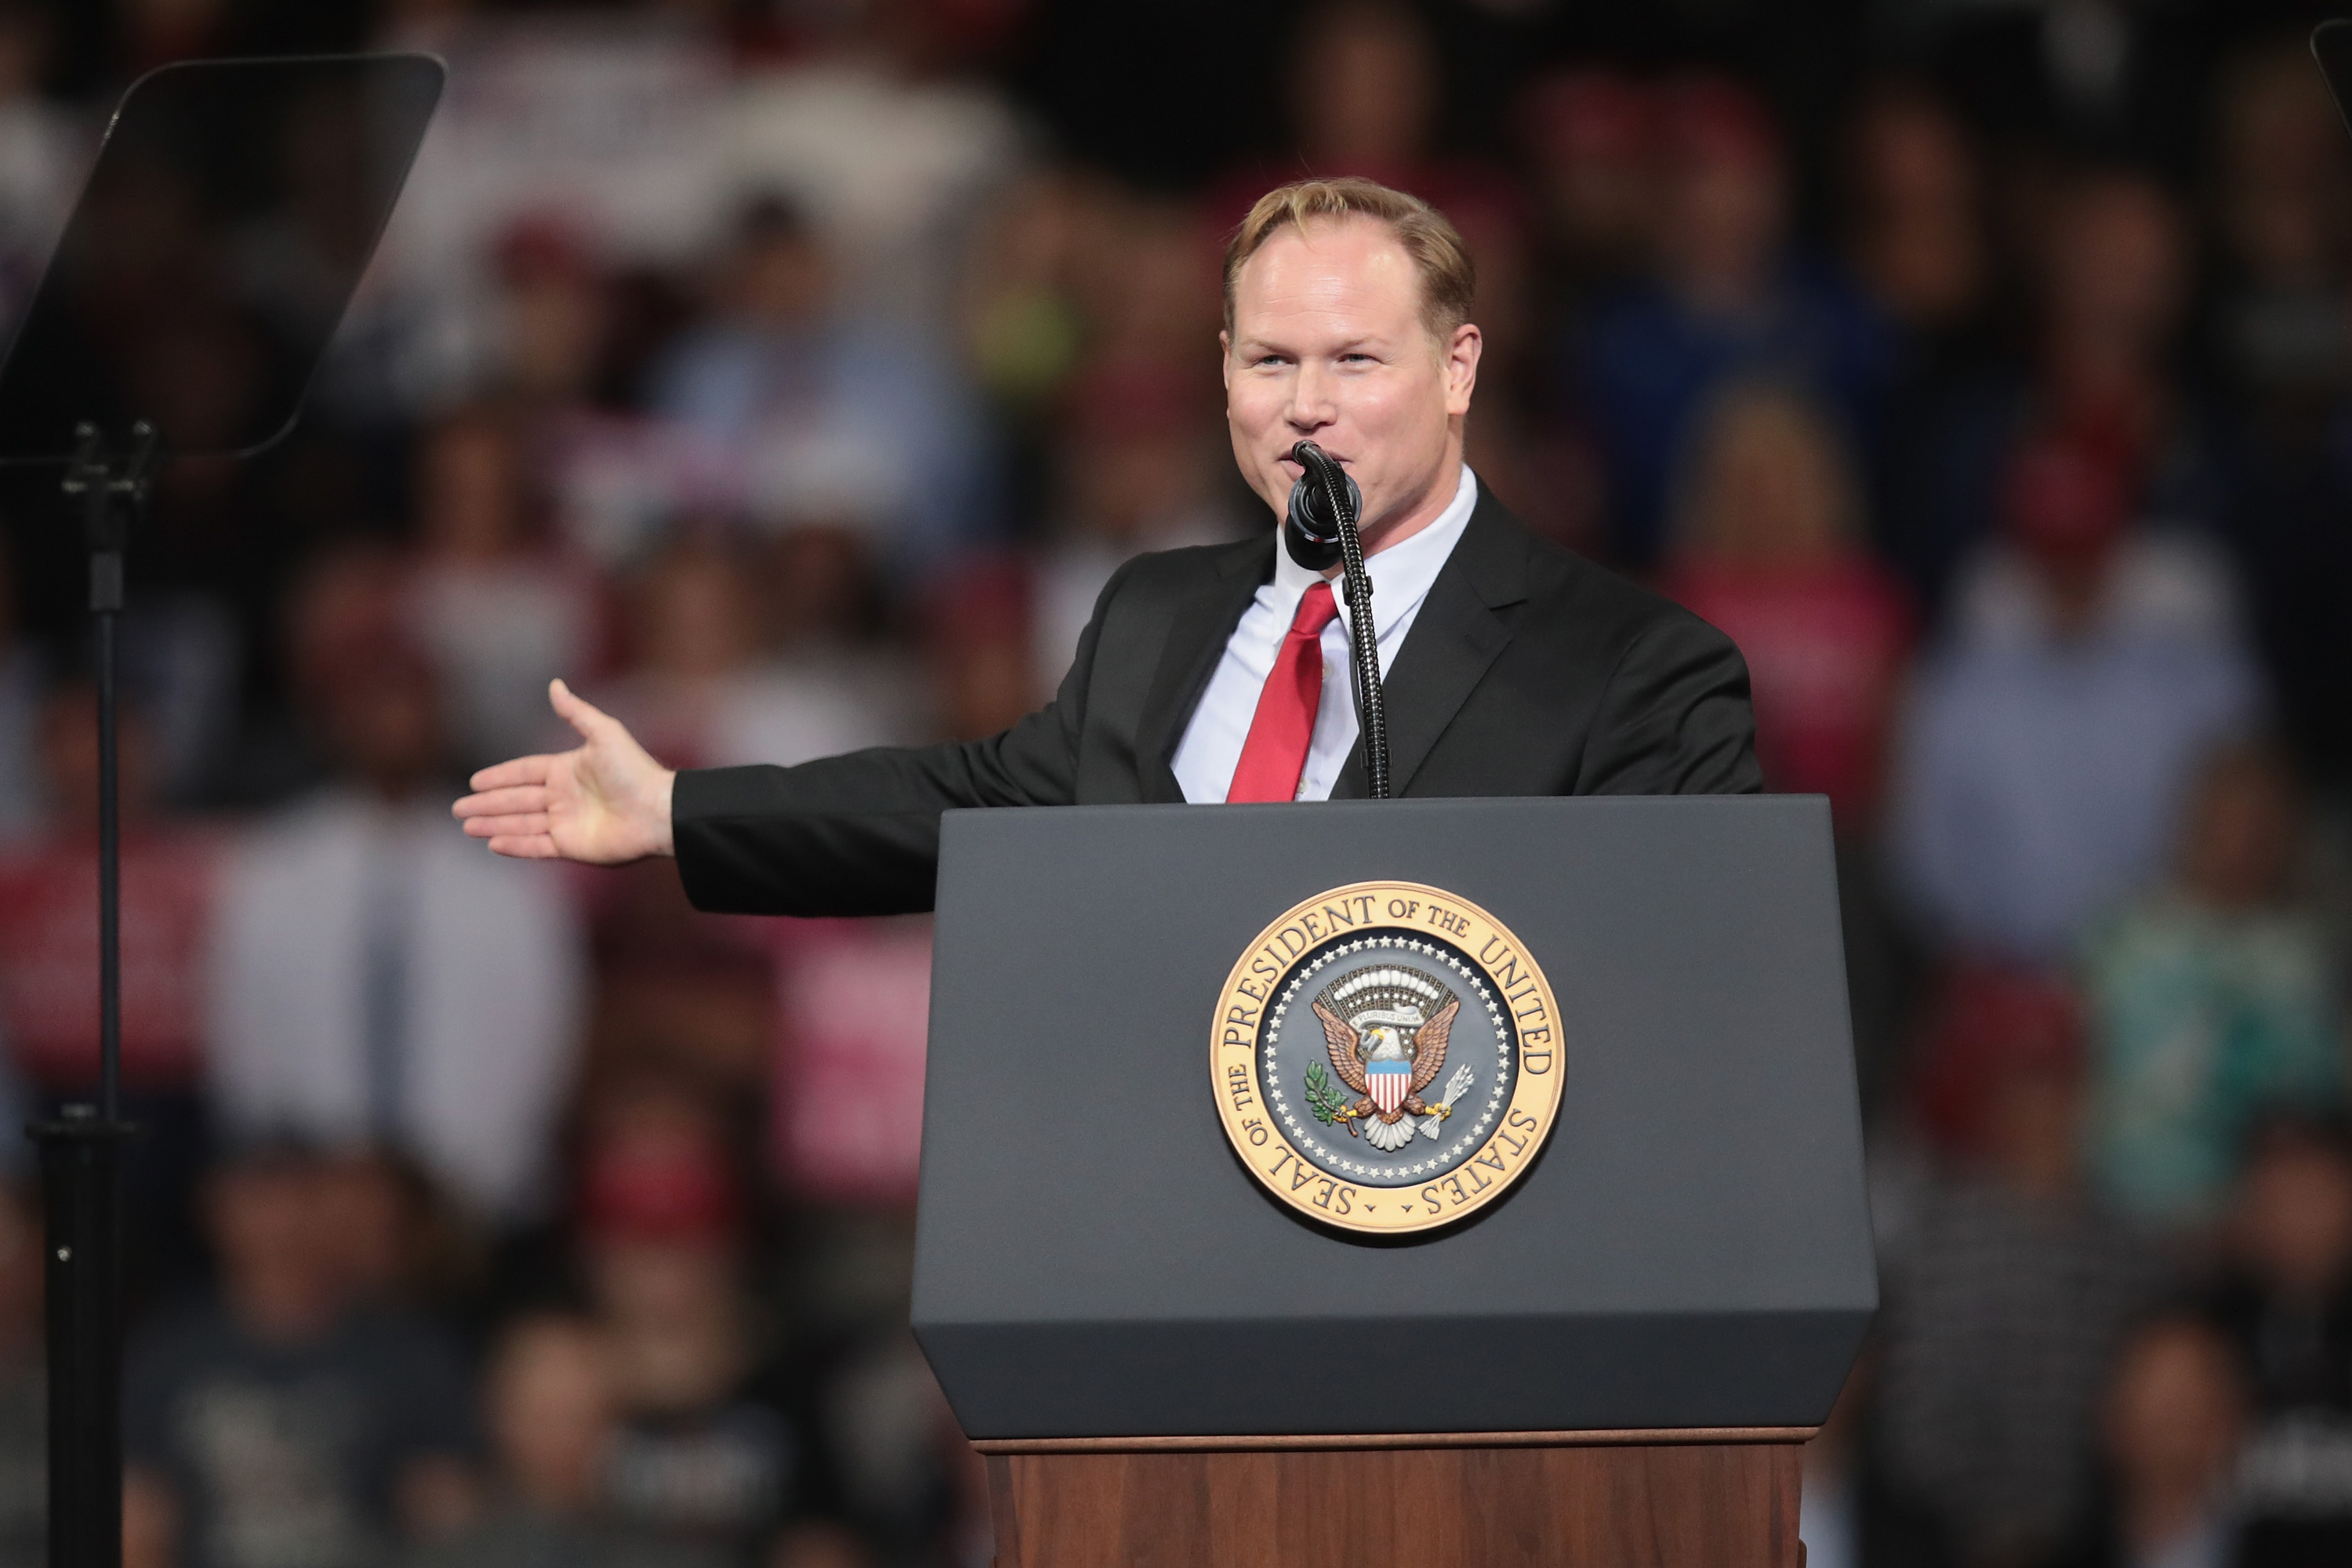 Republican candidate for the U.S. House in Kansas' 2nd district Steve Watkins speaks at a rally with President Donald Trump at the Kansas Expocenter on October 6, 2018 in Topeka, Kansas. Trump scored a political victory today when Judge Brett Kavanaugh was confirmed by the Senate to become the next Supreme Court justice. (Scott Olson/Getty Images)